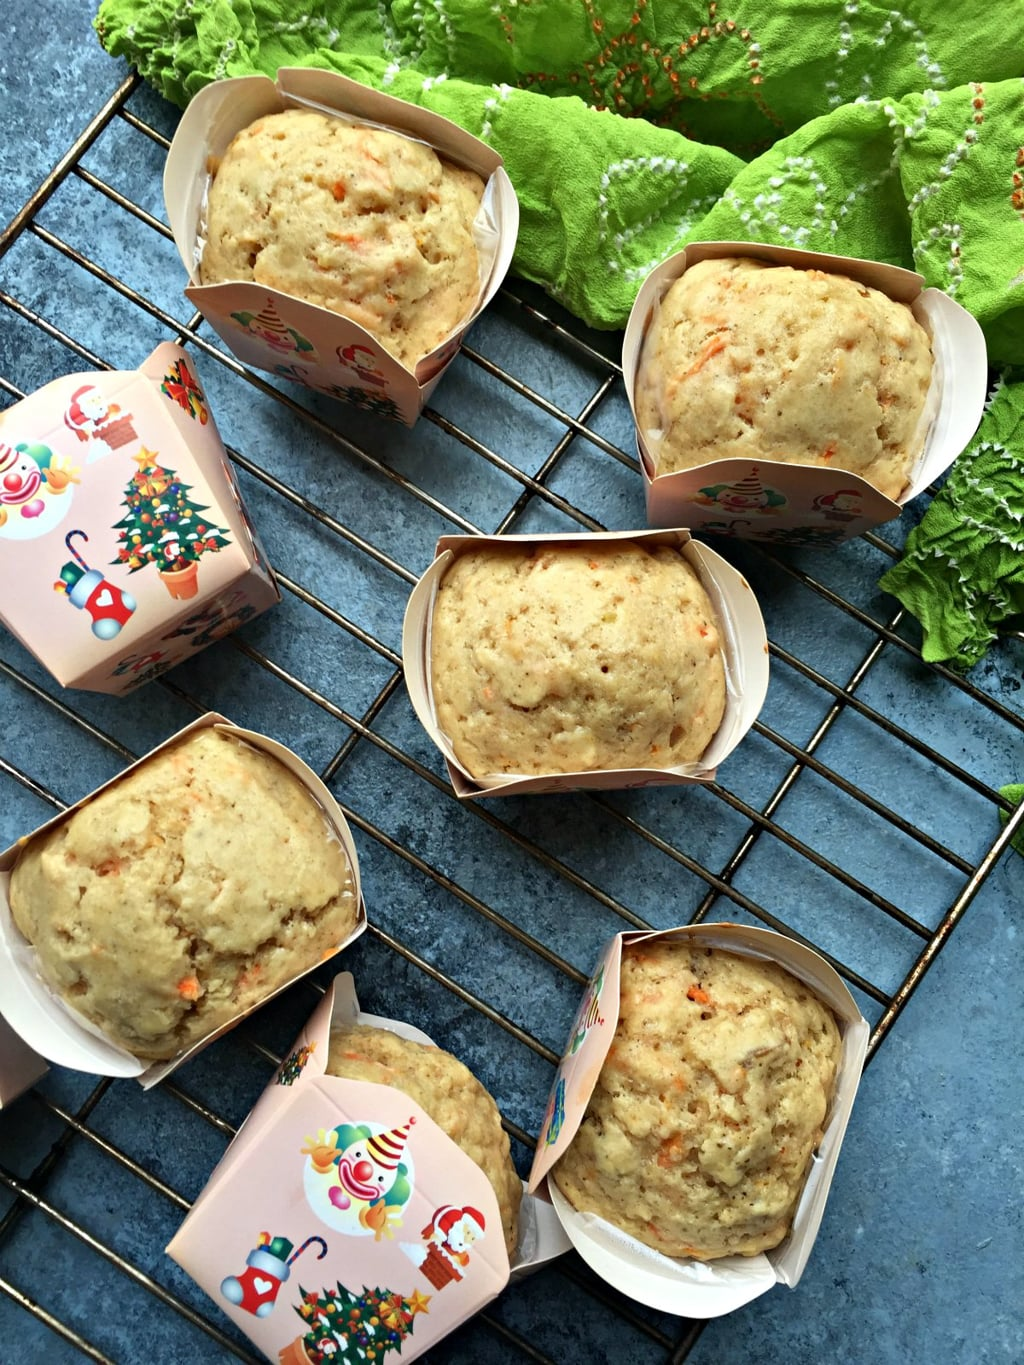 Carrot, Ginger & Candied Citrus Peel Muffins